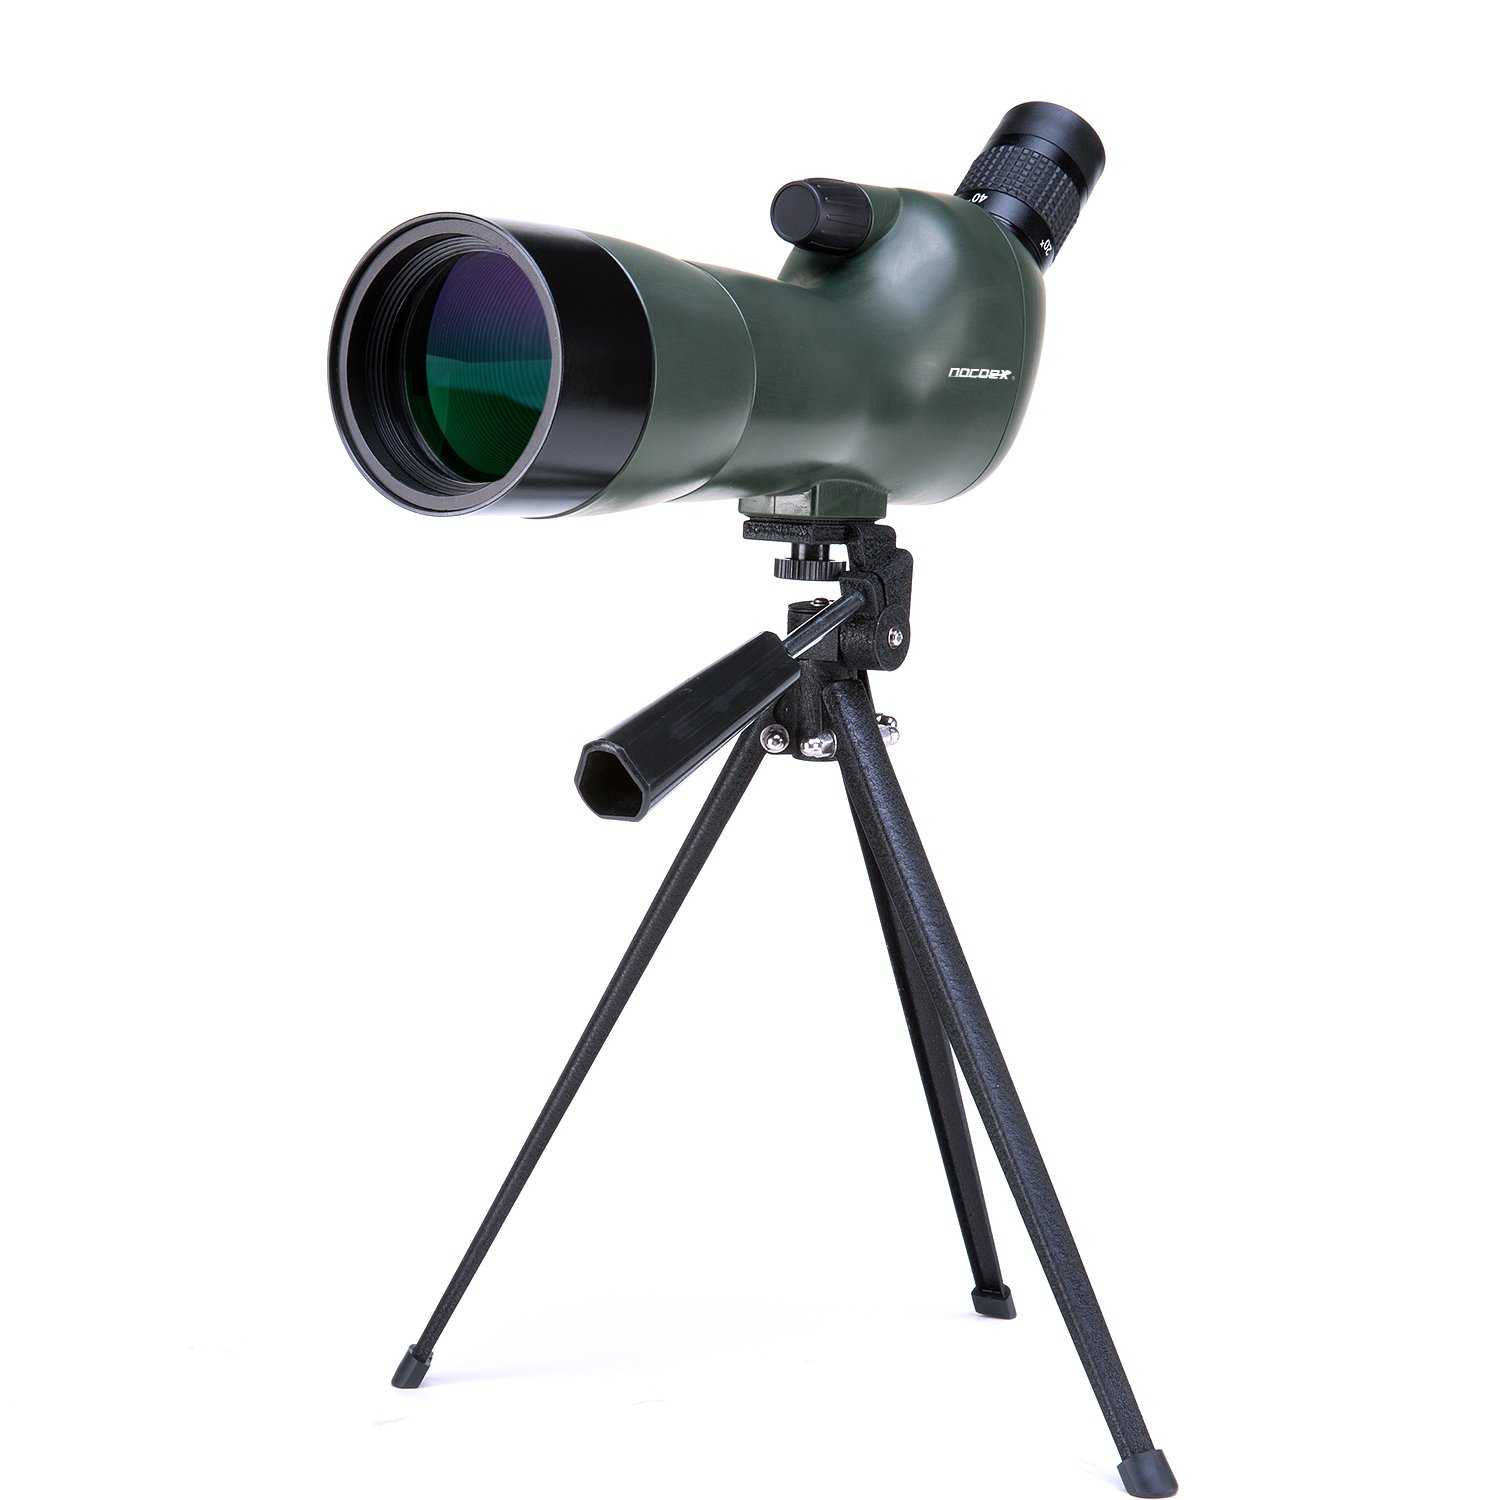 NOCOEX®20-60X60 Zoom Magnification Telescope - Waterproof, Fogproof -Tri-pod For Hands Canon SLR photography For Bird Watching, or Wildlife(Army Green) EX6108